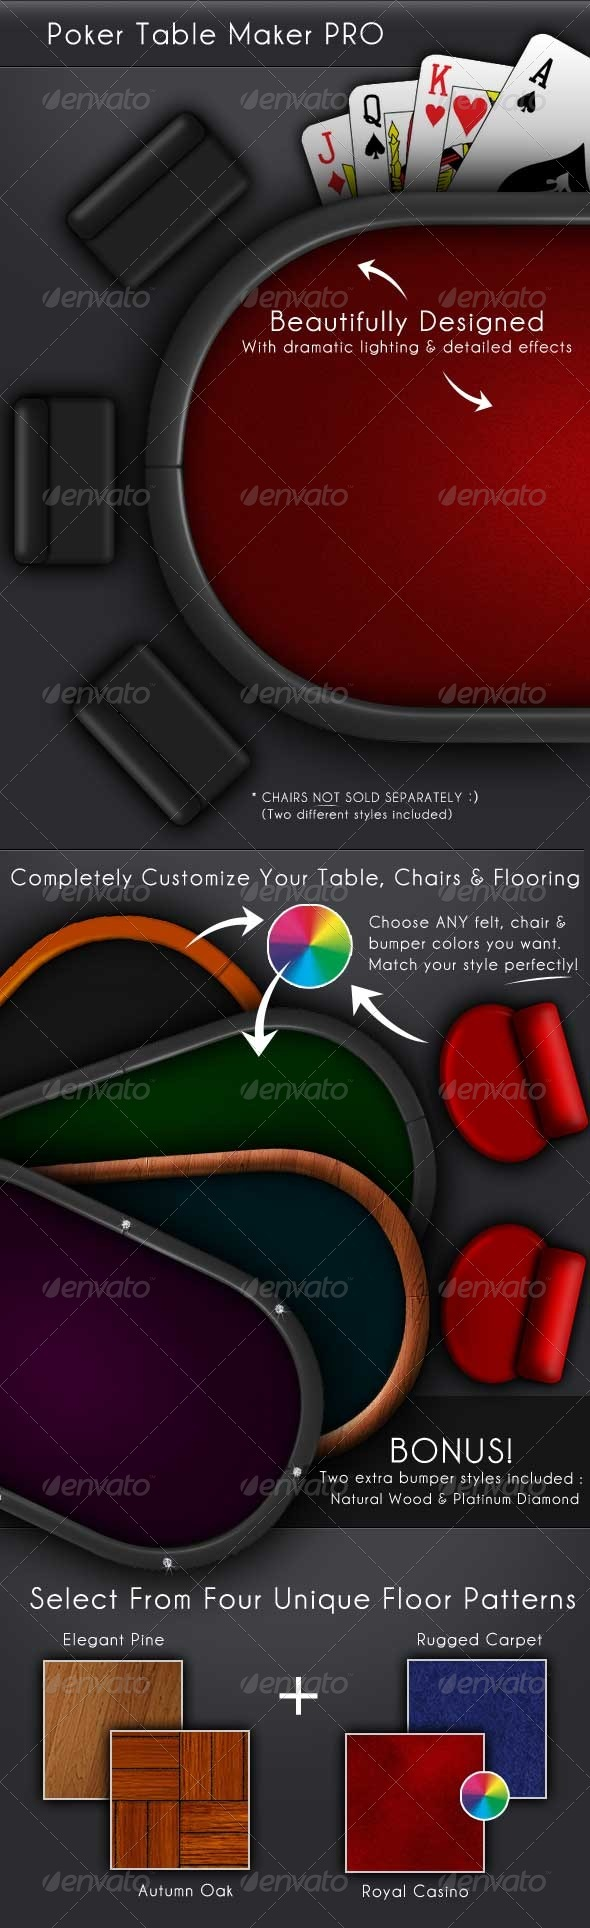 Casino Poker Table Maker Pro - Objects Illustrations